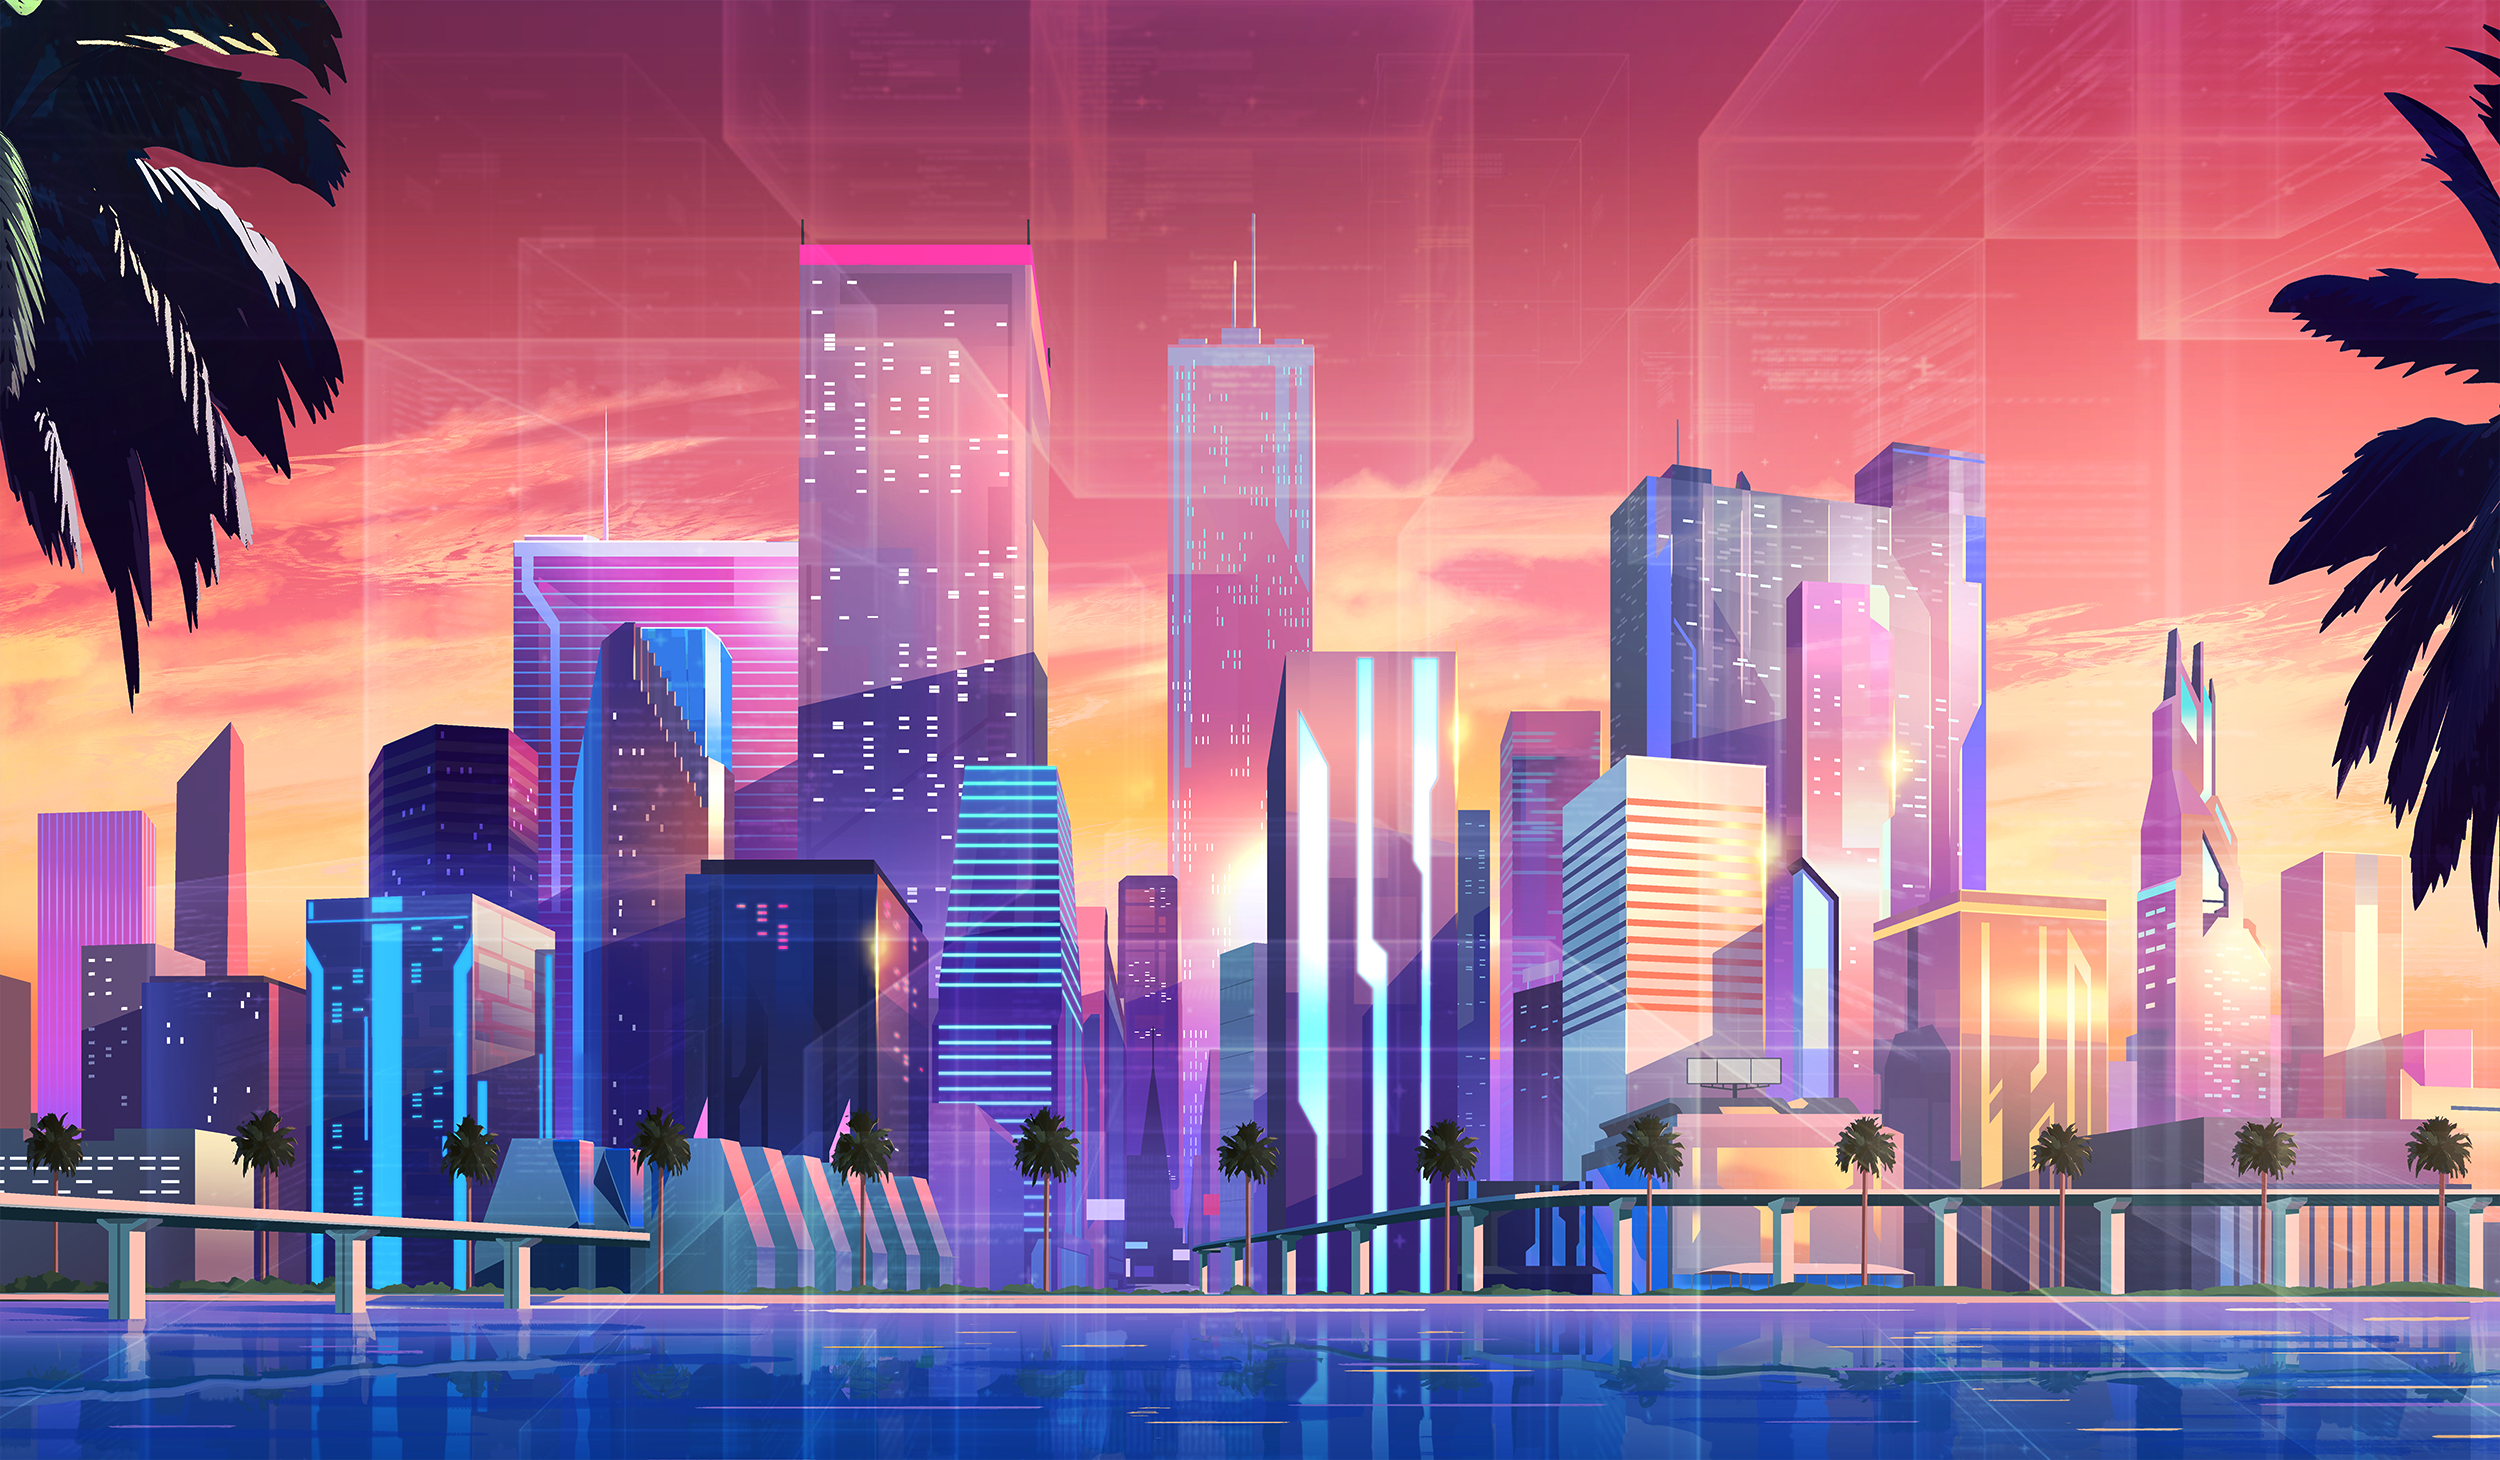 Will Blockchain Radically Change The Real Estate Industry City Wallpaper Aesthetic Wallpapers City Aesthetic